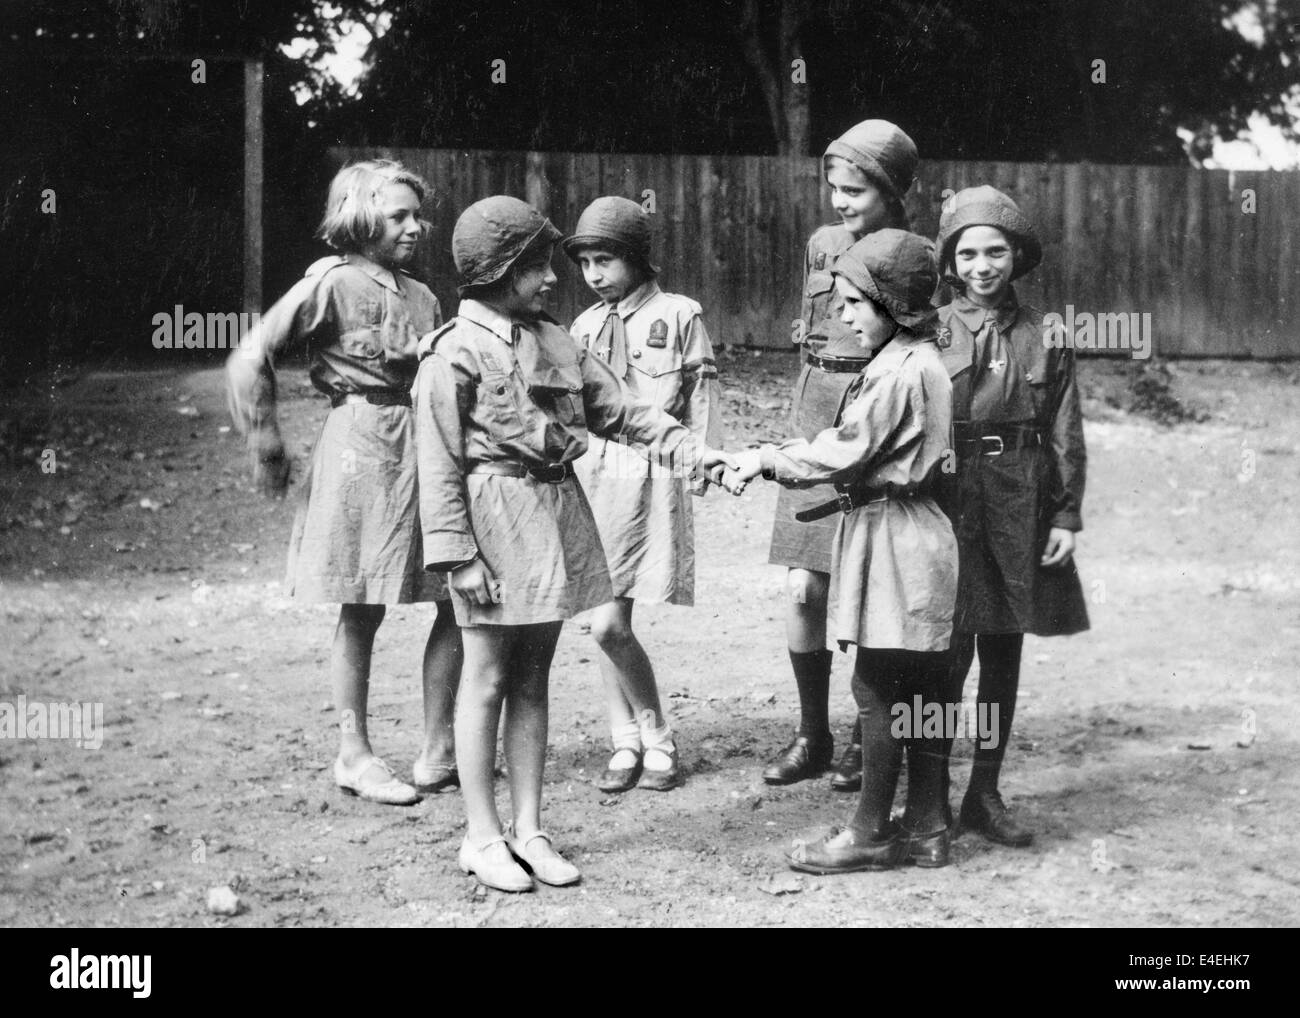 Welcoming a new recruit Brownie Girl Guides 1936  Guiding guide group 1930s uk - Stock Image